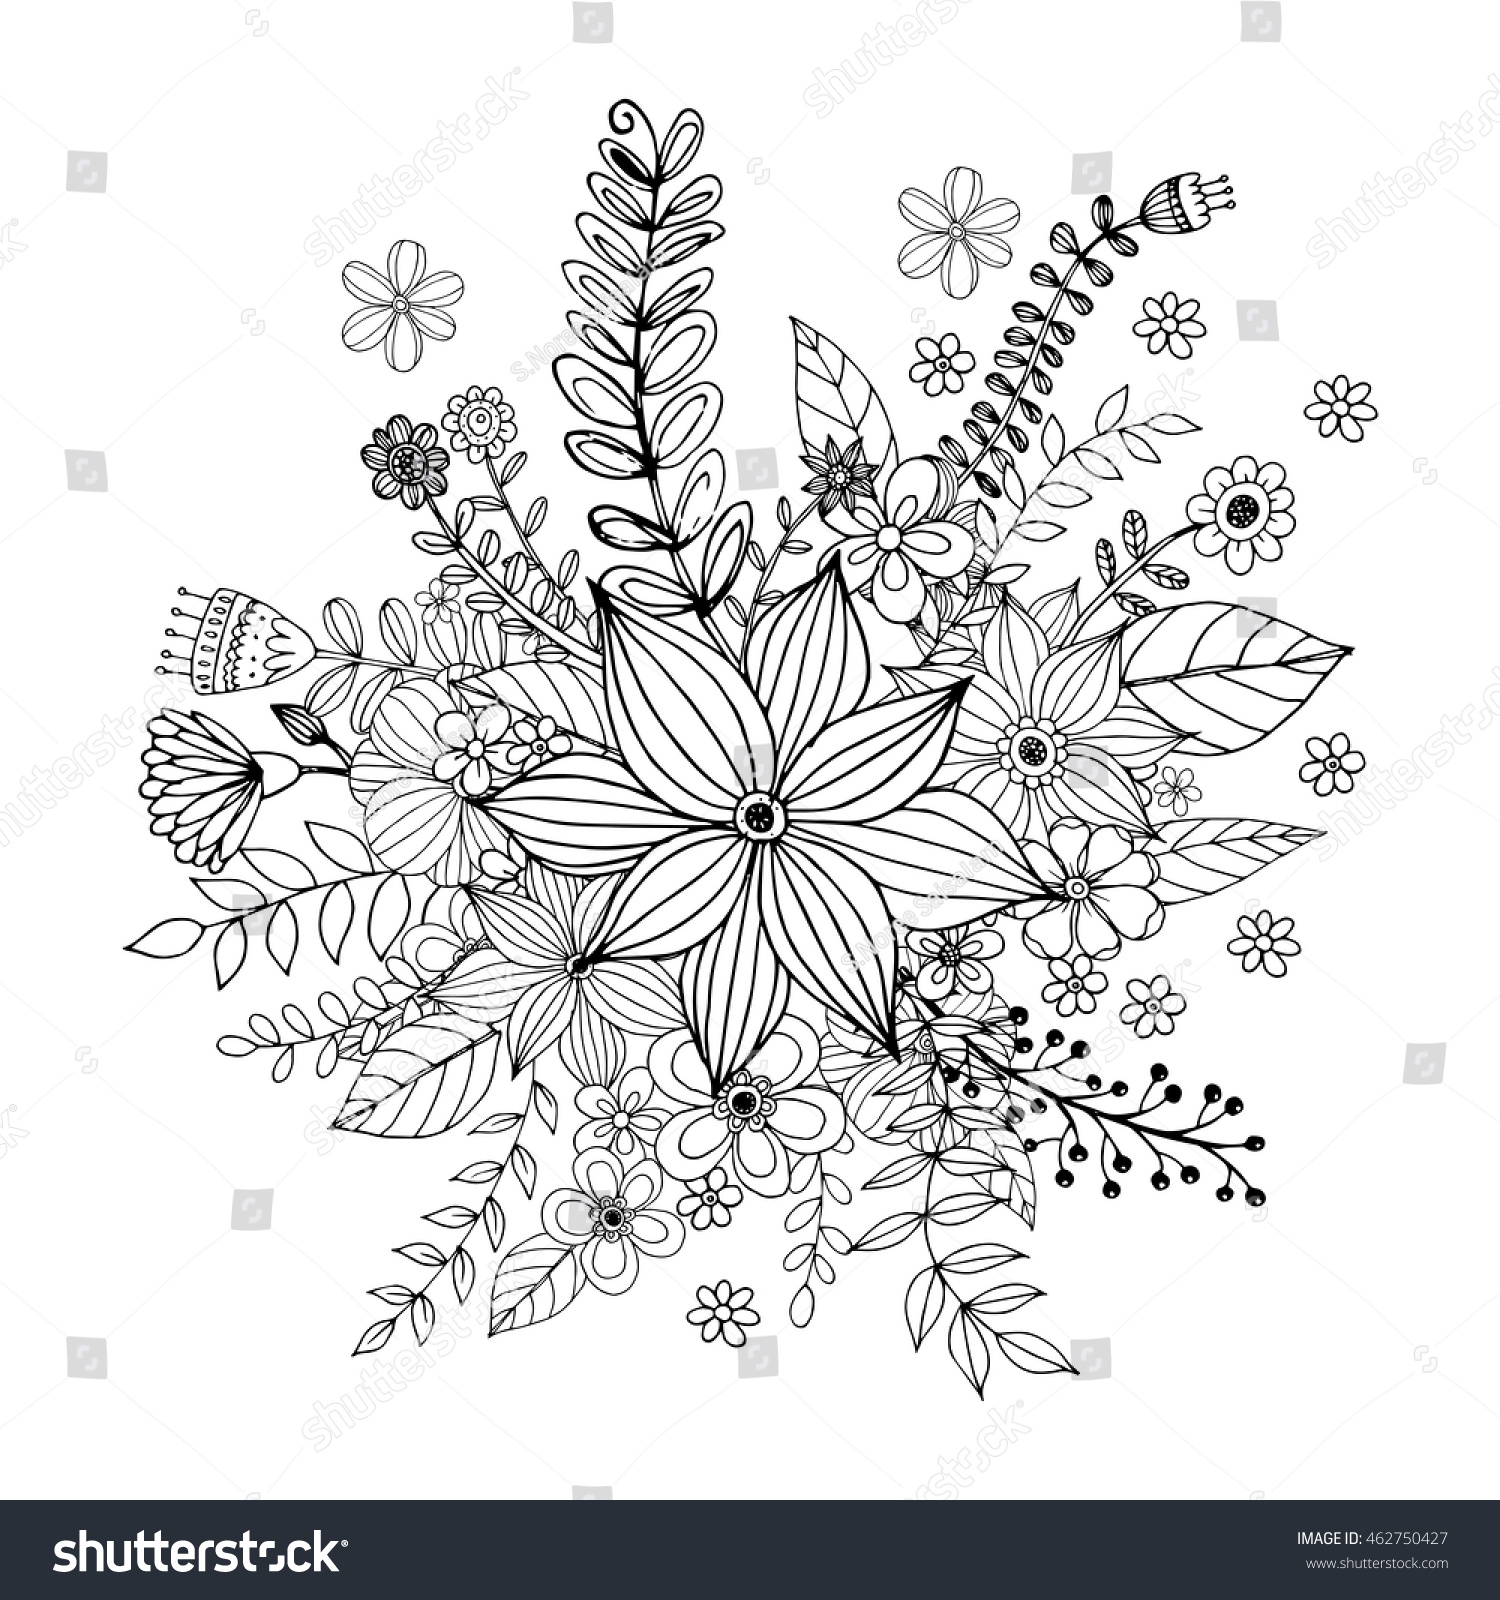 flower doodle drawing freehand vector coloring stock vector